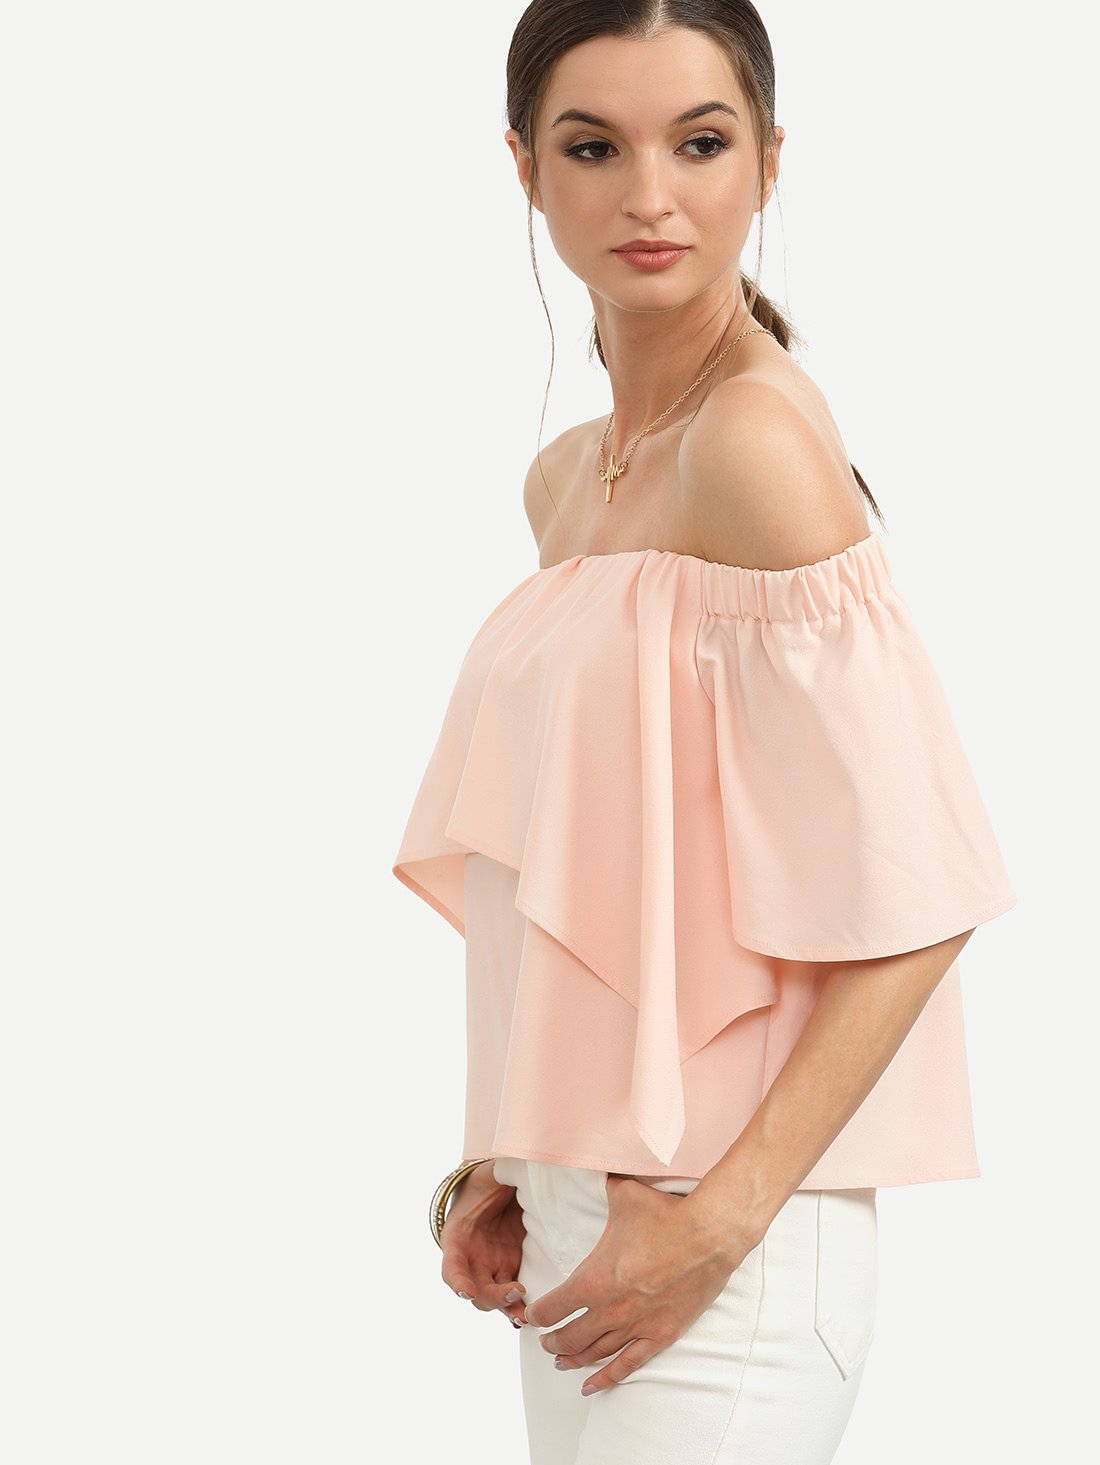 3578fafa8c2bf3 Material: 100% Polyester Color: Pink Pattern Type: Plain Collar: Off the